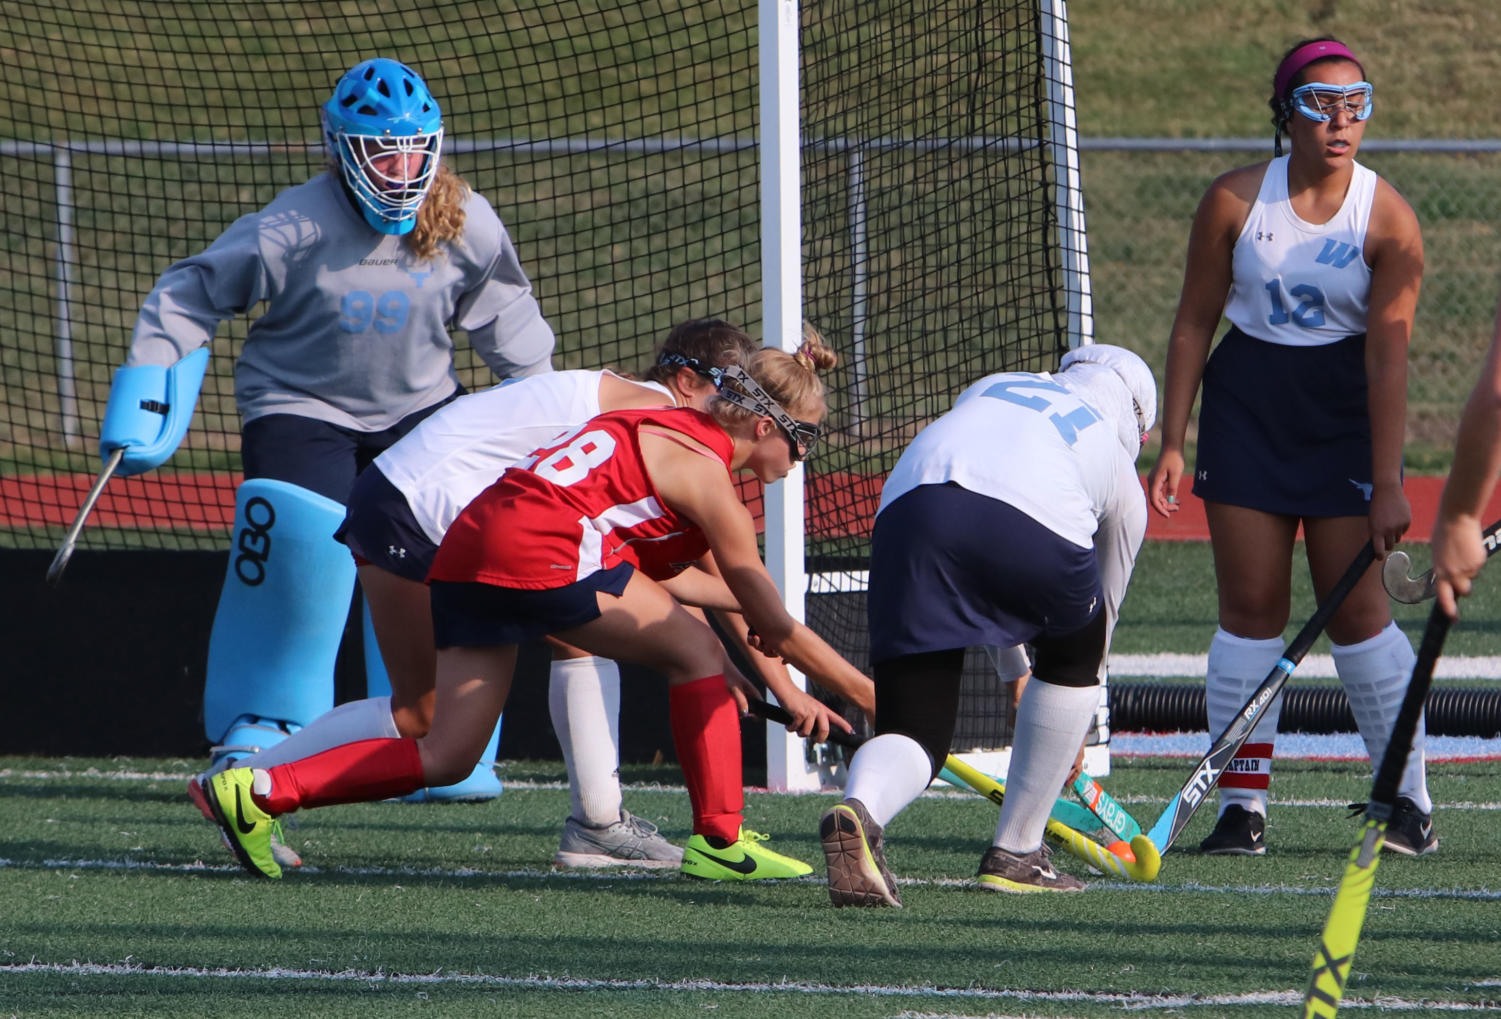 """During a game against the Lindbergh Flyers, sophomore Karen Trevor-Roberts guards her goal. """"I do everything to make sure the ball doesn't get into the goal, even during practice when a lot of balls are being shot against me,"""" Trevor-Roberts said. """"[Field hockey] gives you a family. It teaches me teamwork and even helps with social skills. It also teaches me how to balance school and sports."""""""